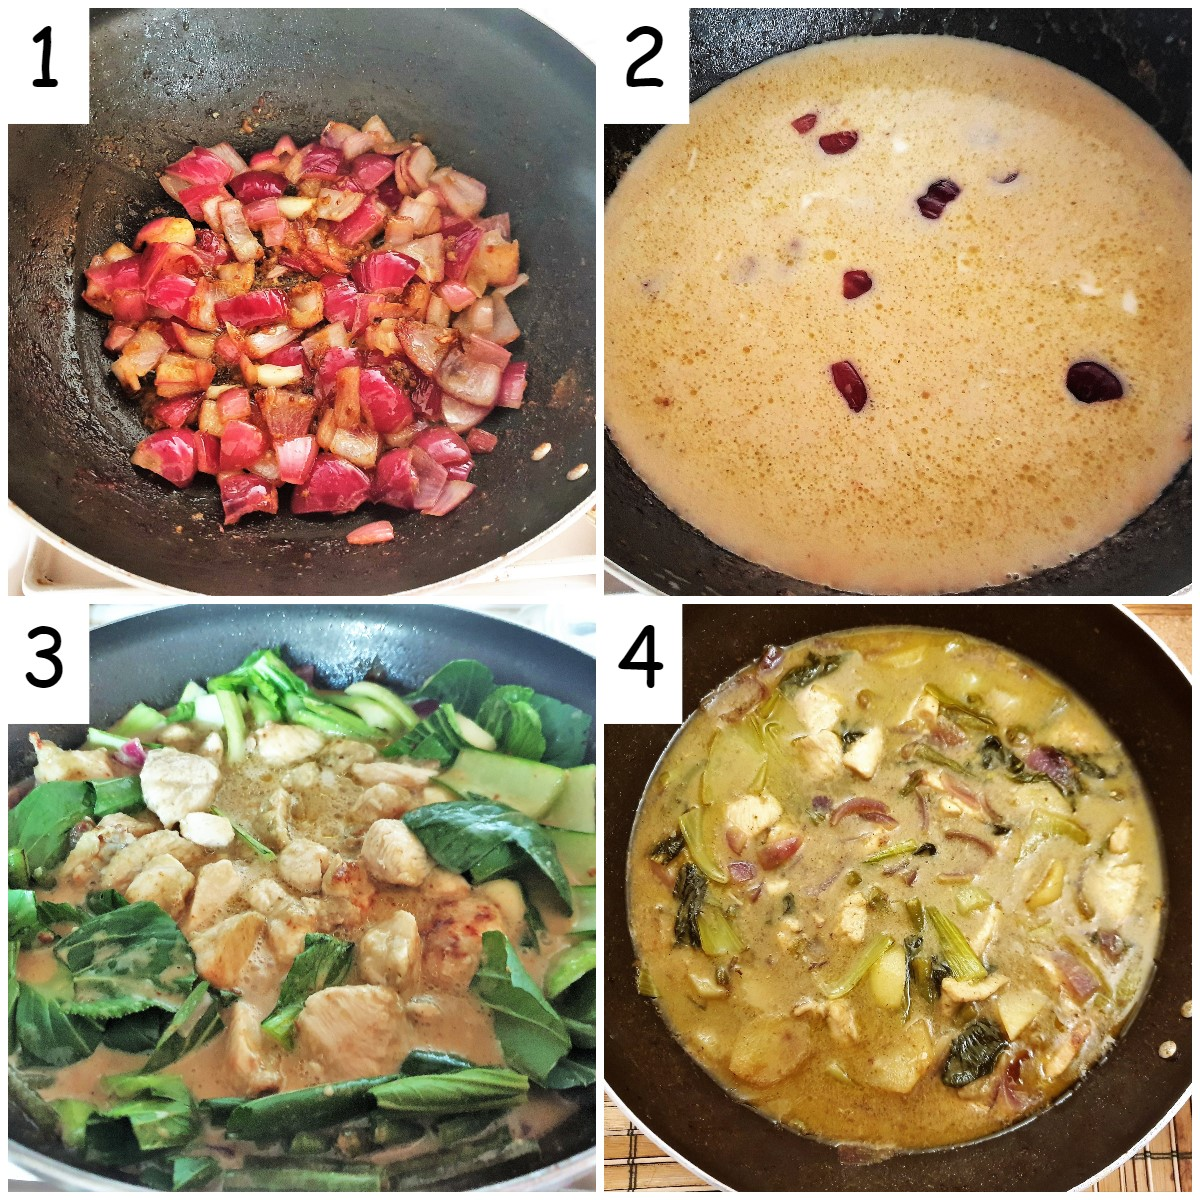 A collage of 4 images showing steps for making the curry.